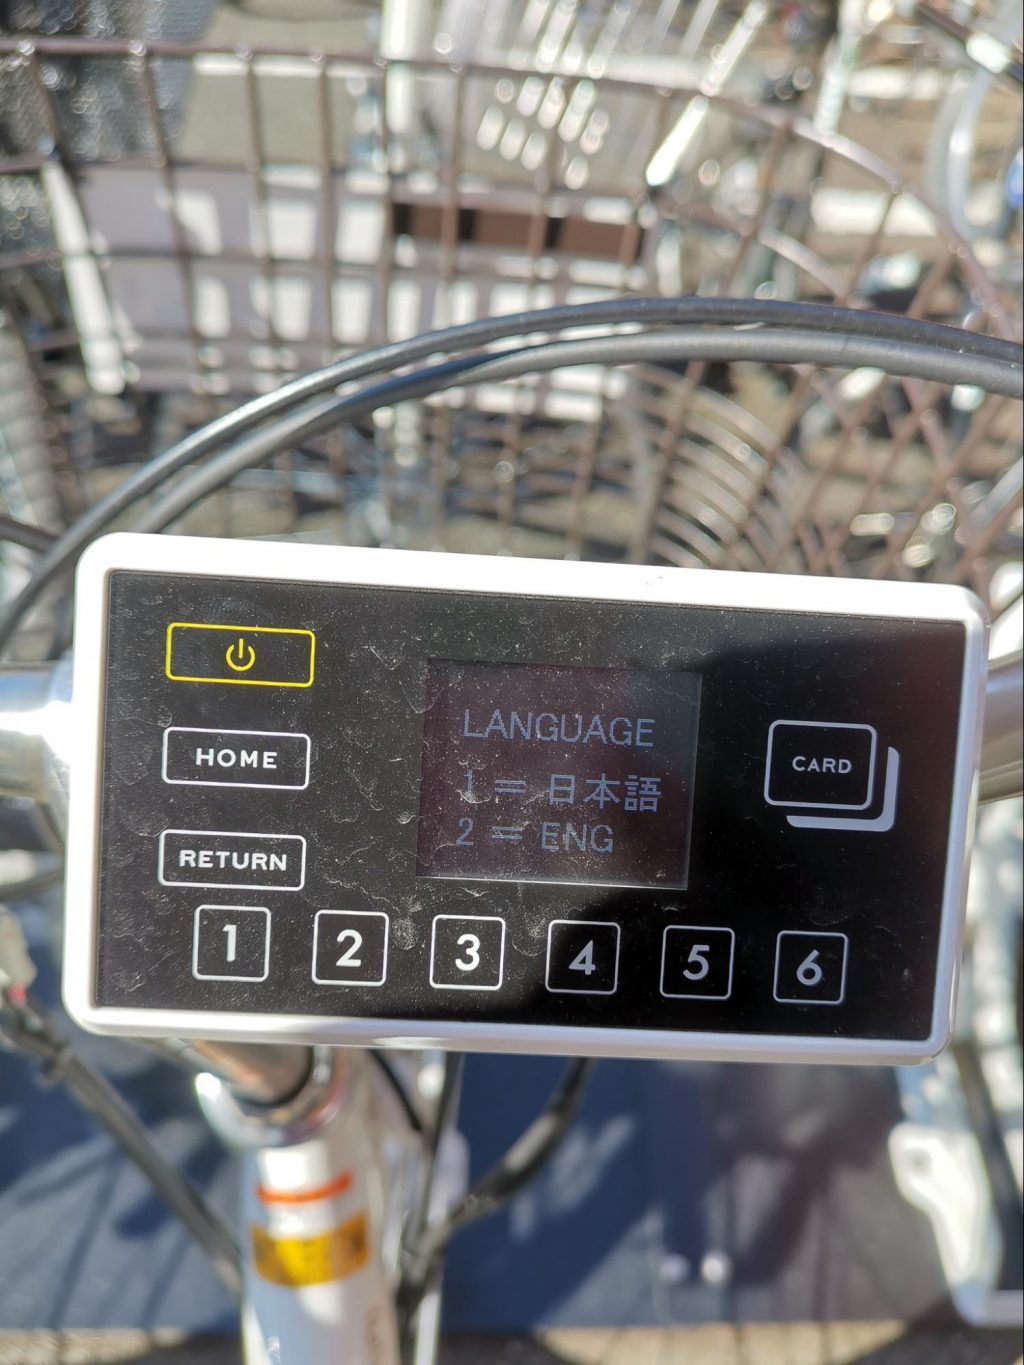 language settings in English and Japanese